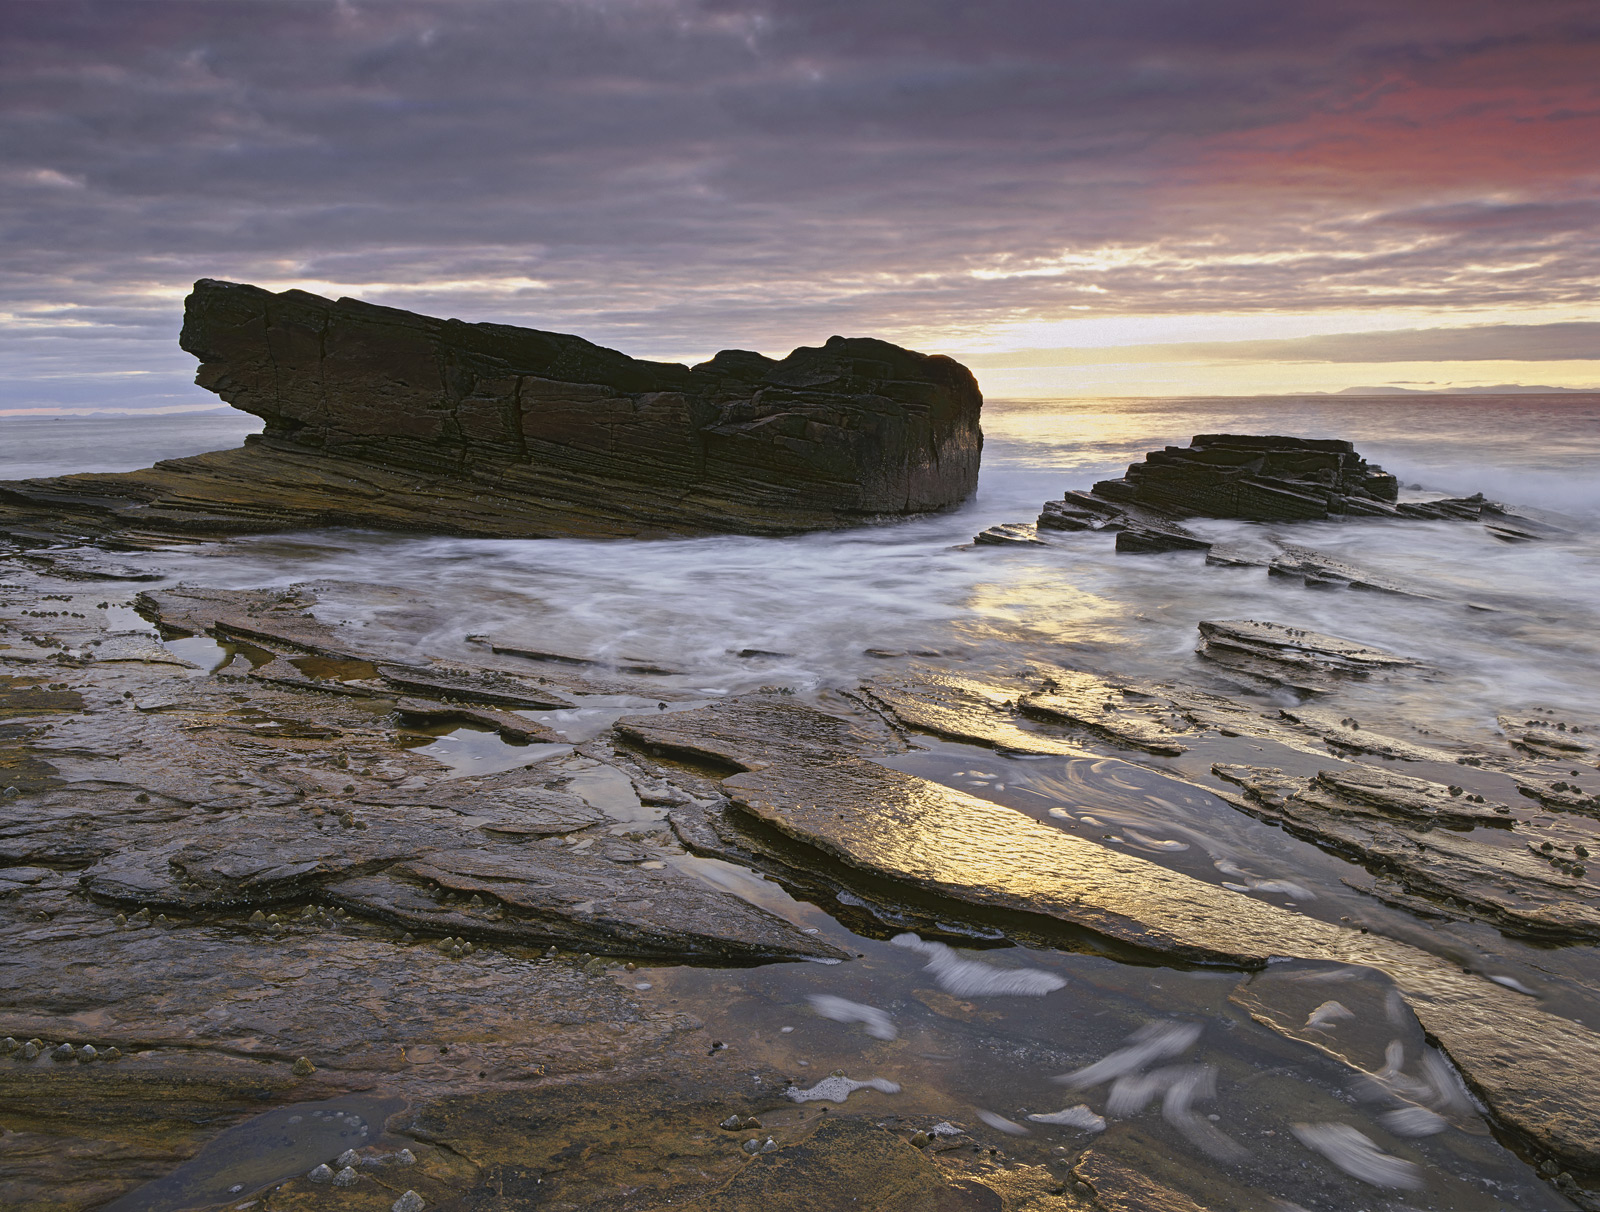 Sandstone rock being generally light and yellowish in colour has the ability to pick up warm sunlight and be greatly enhanced...